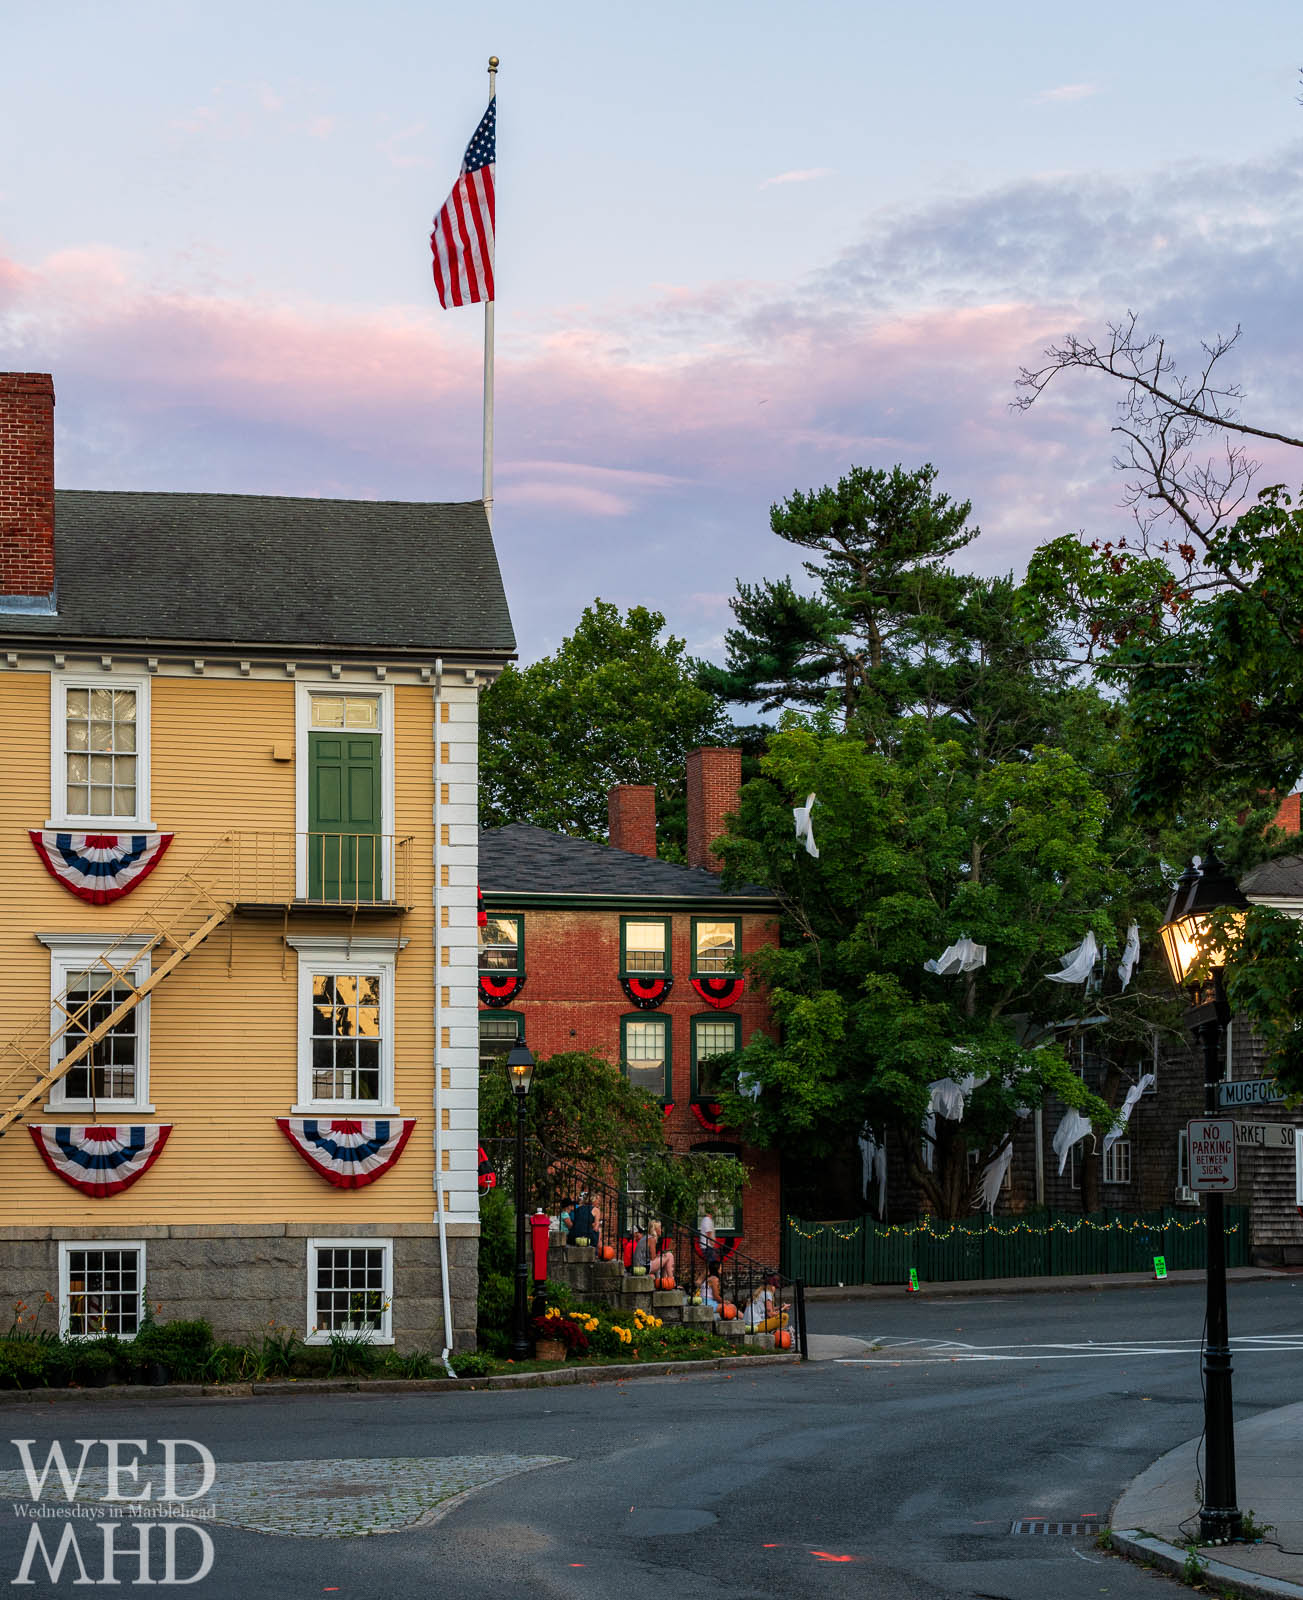 Old Town House is bathed in the light of sunset with ghosts in the trees bringing a Halloween atmosphere to a mid-July evening in Marblehead